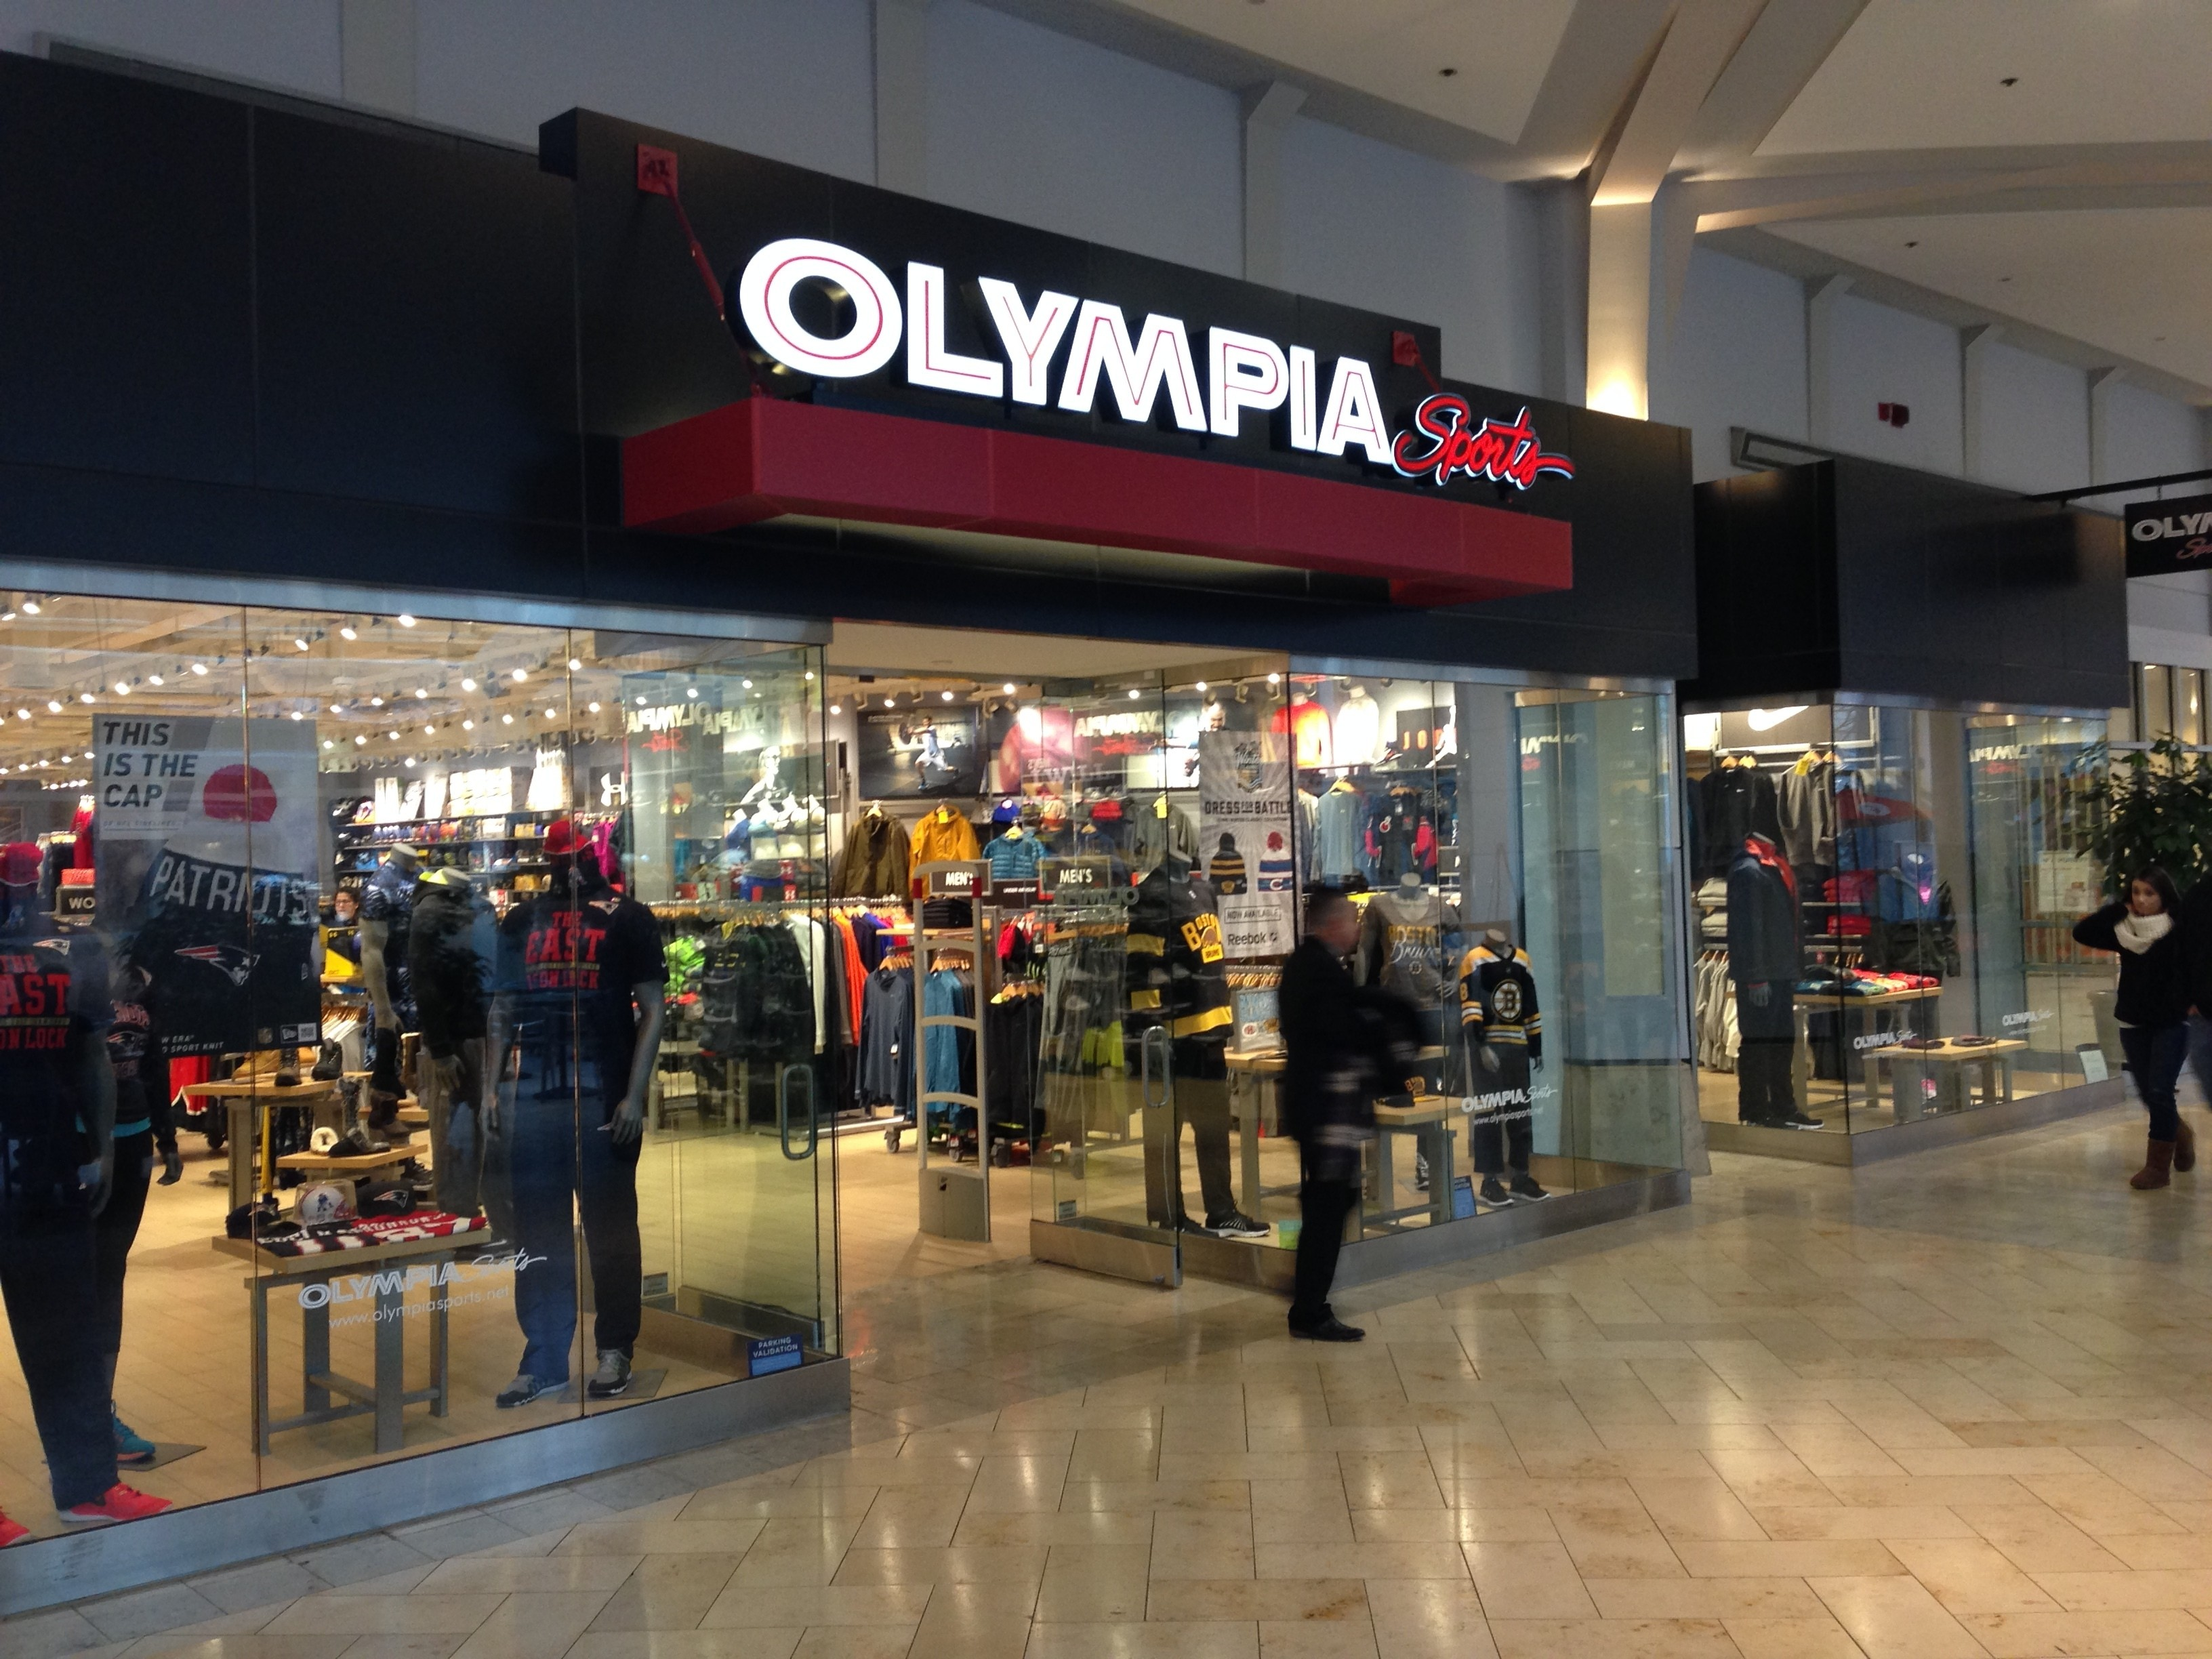 Office Supplies Office Electronics Walmart for Business. Video Games. Certified Refurbished. Olympia Sports Sports Equipment Fan Shop See All. Skip to end of links $ Olympia Sports BAP The Rock- Basketball - Womens. Average rating: out of 5 stars, based on reviews. Reduced Price $